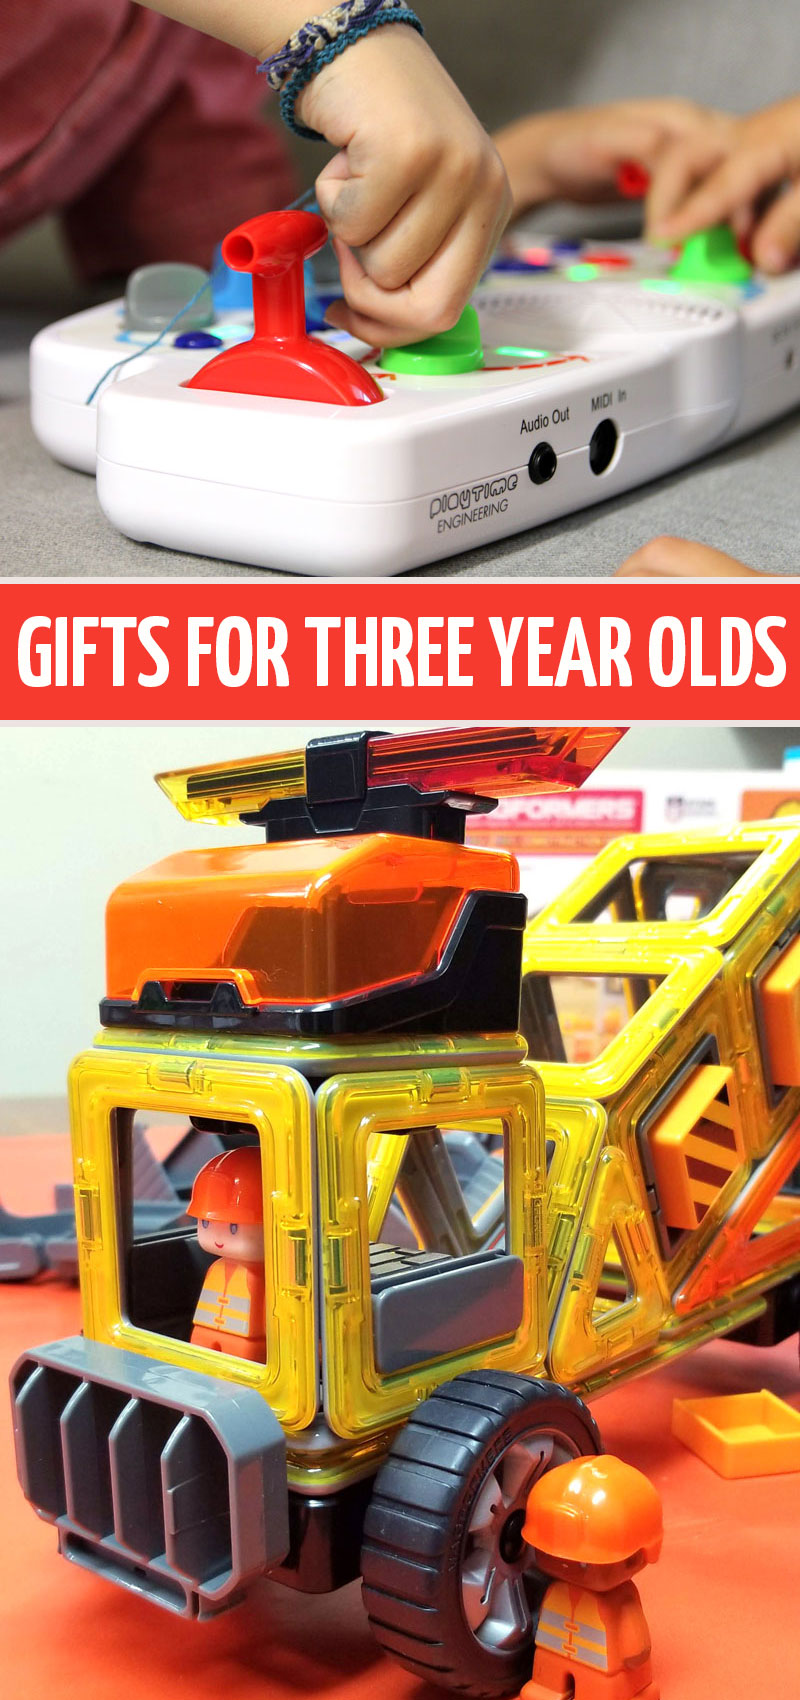 These are our favorite gifts for three year olds! These fun toys and games are perfect for birthday gifts for 3 year old boys or holiday gifts for older toddler boy sand girls!